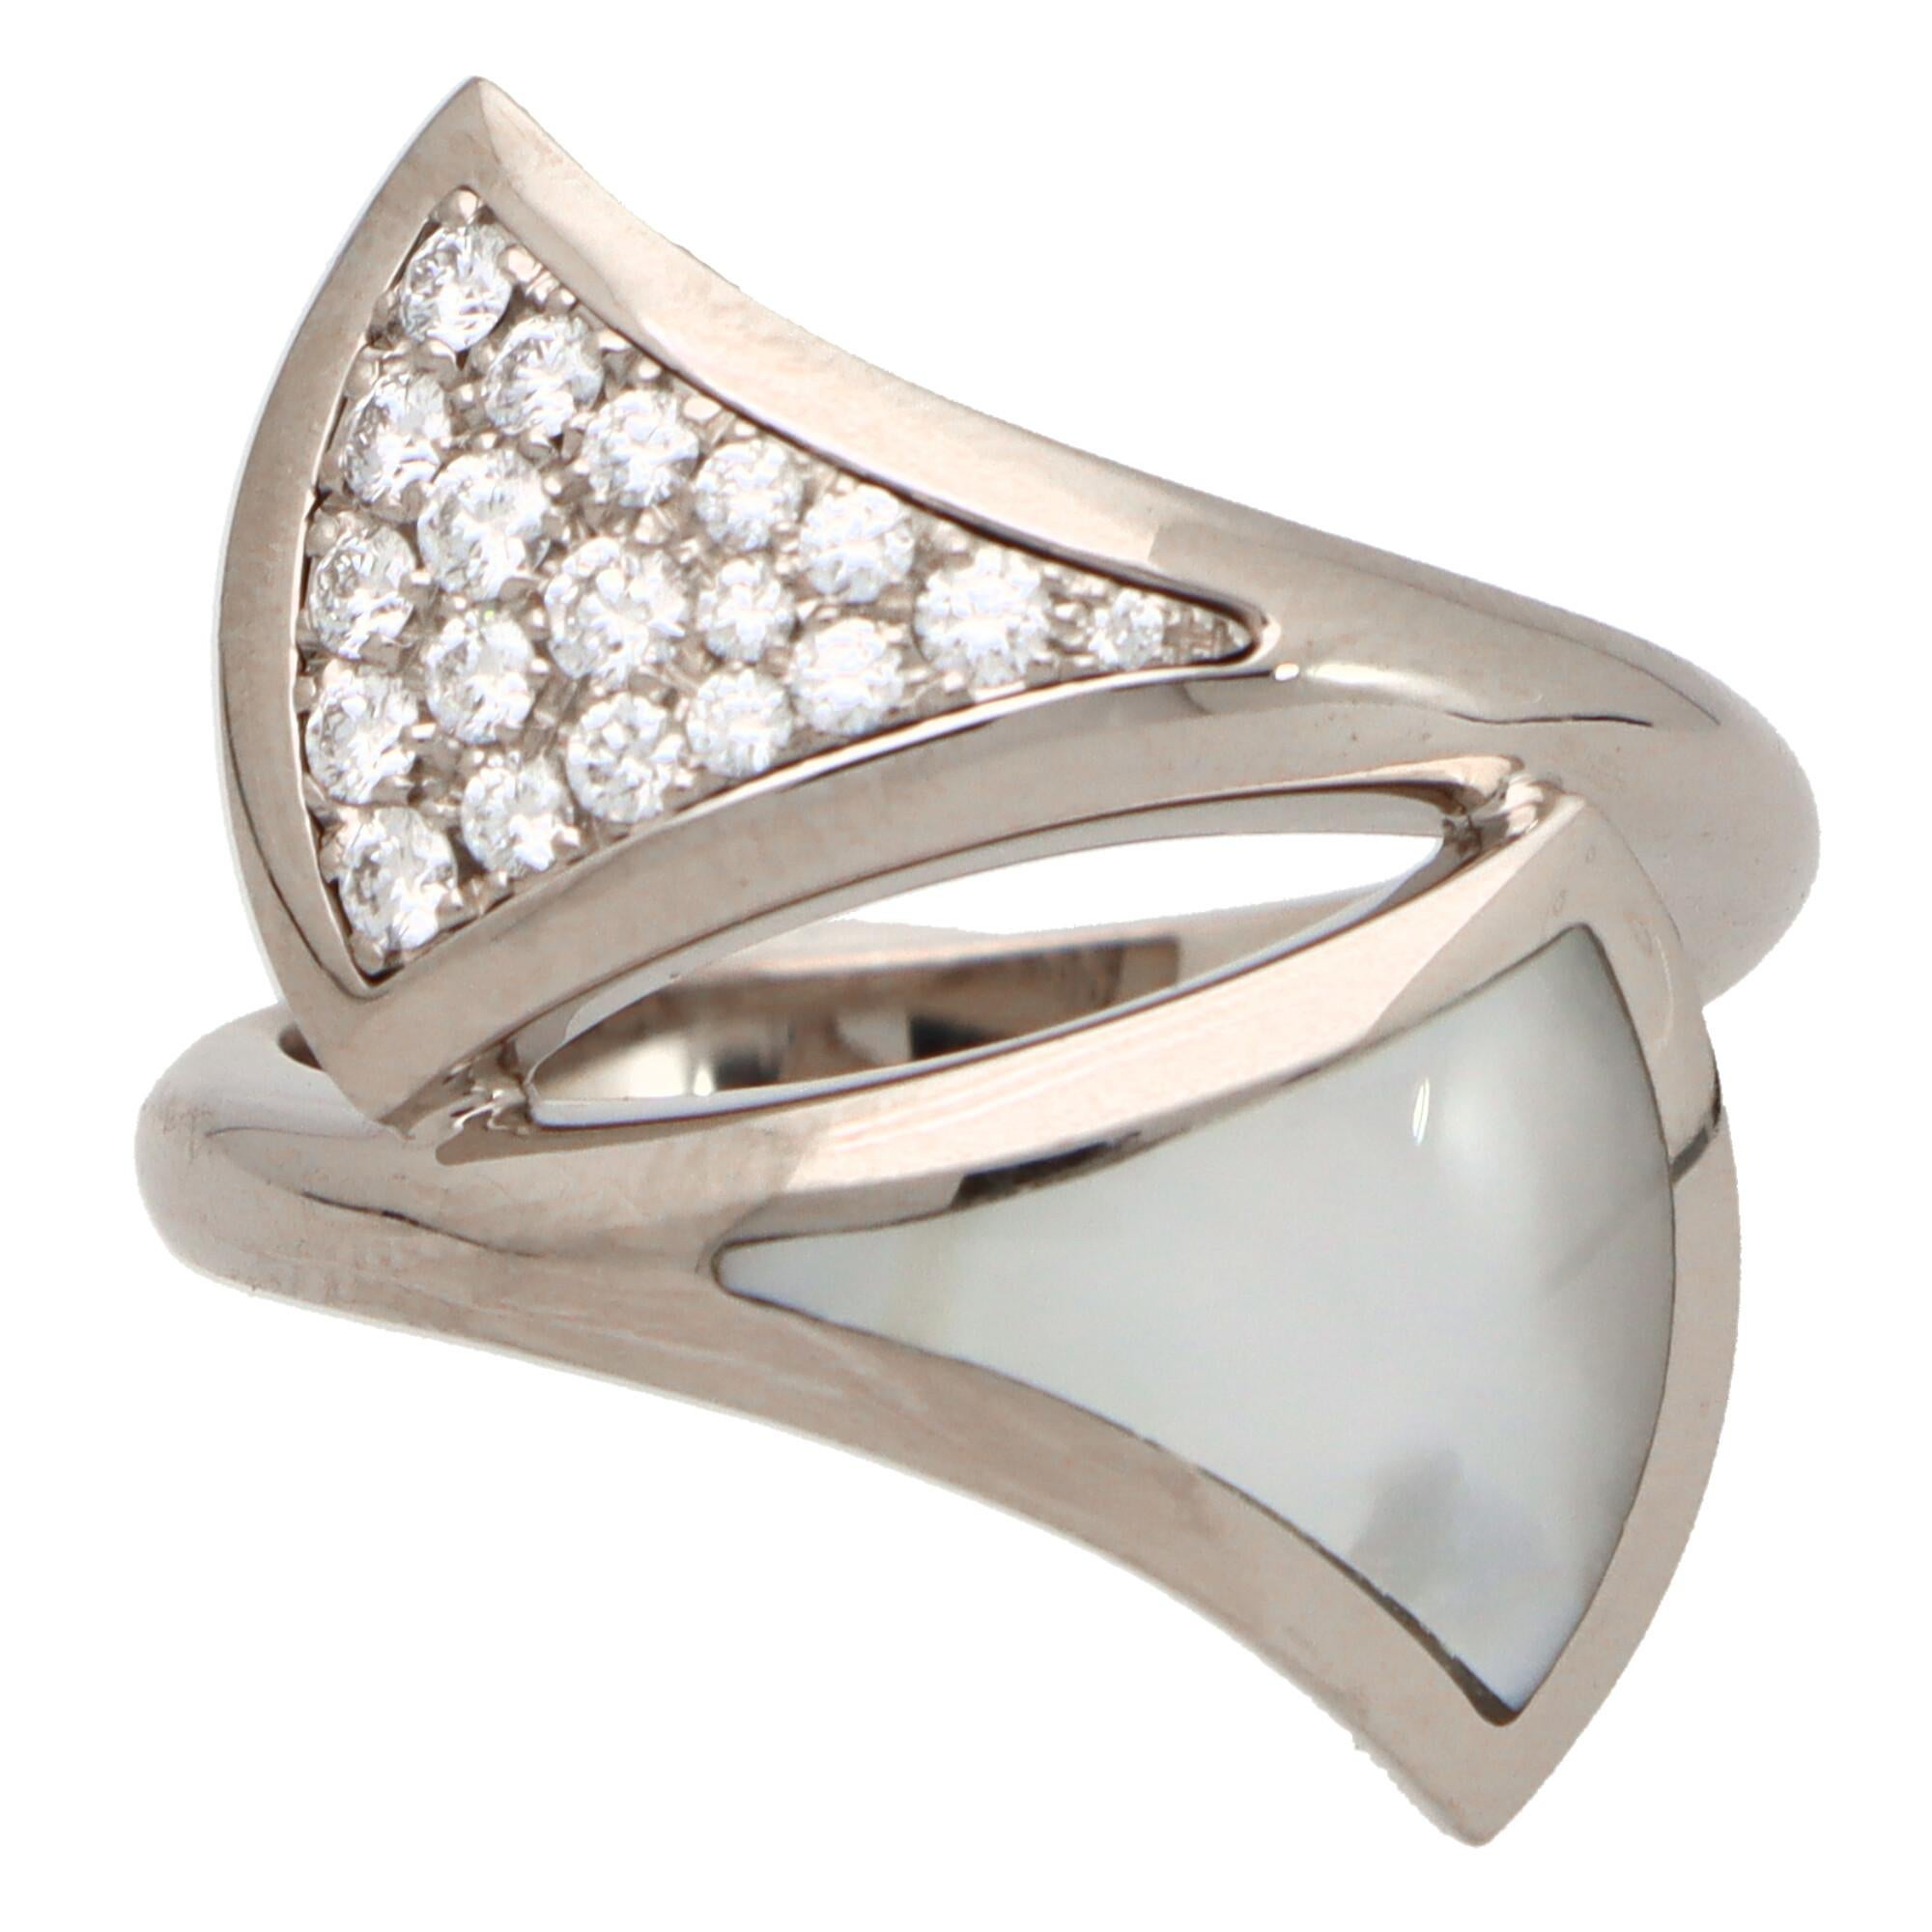 Vintage Bvlgari Mother-of-Pearl and Diamond 'Divas Dream' Ring in White Gold